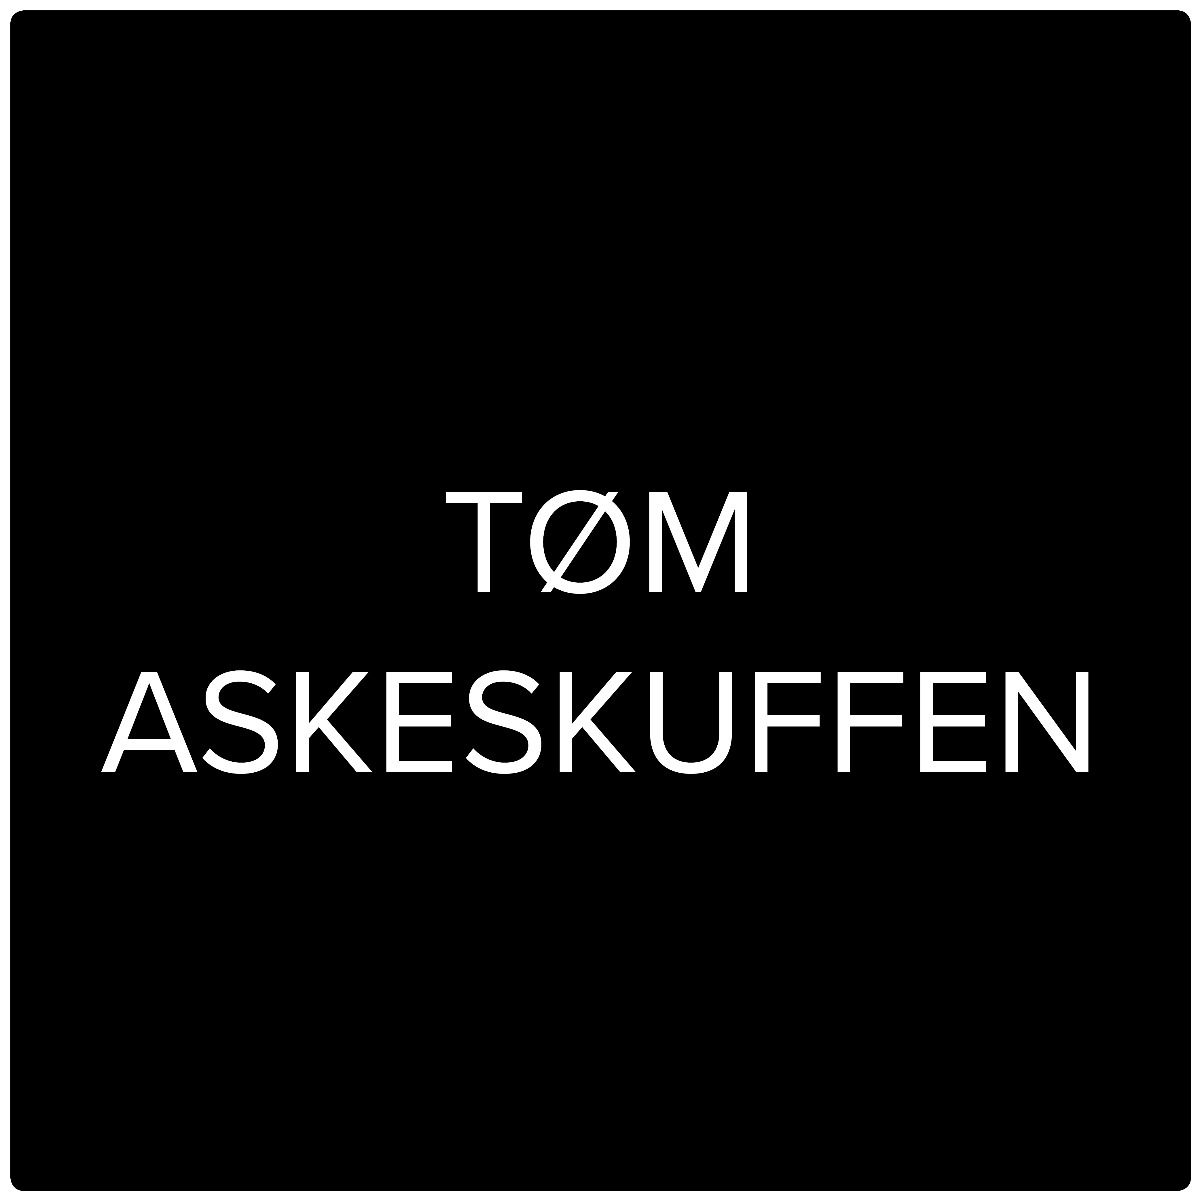 HWAM Video: Tøm askeskuffen korrekt